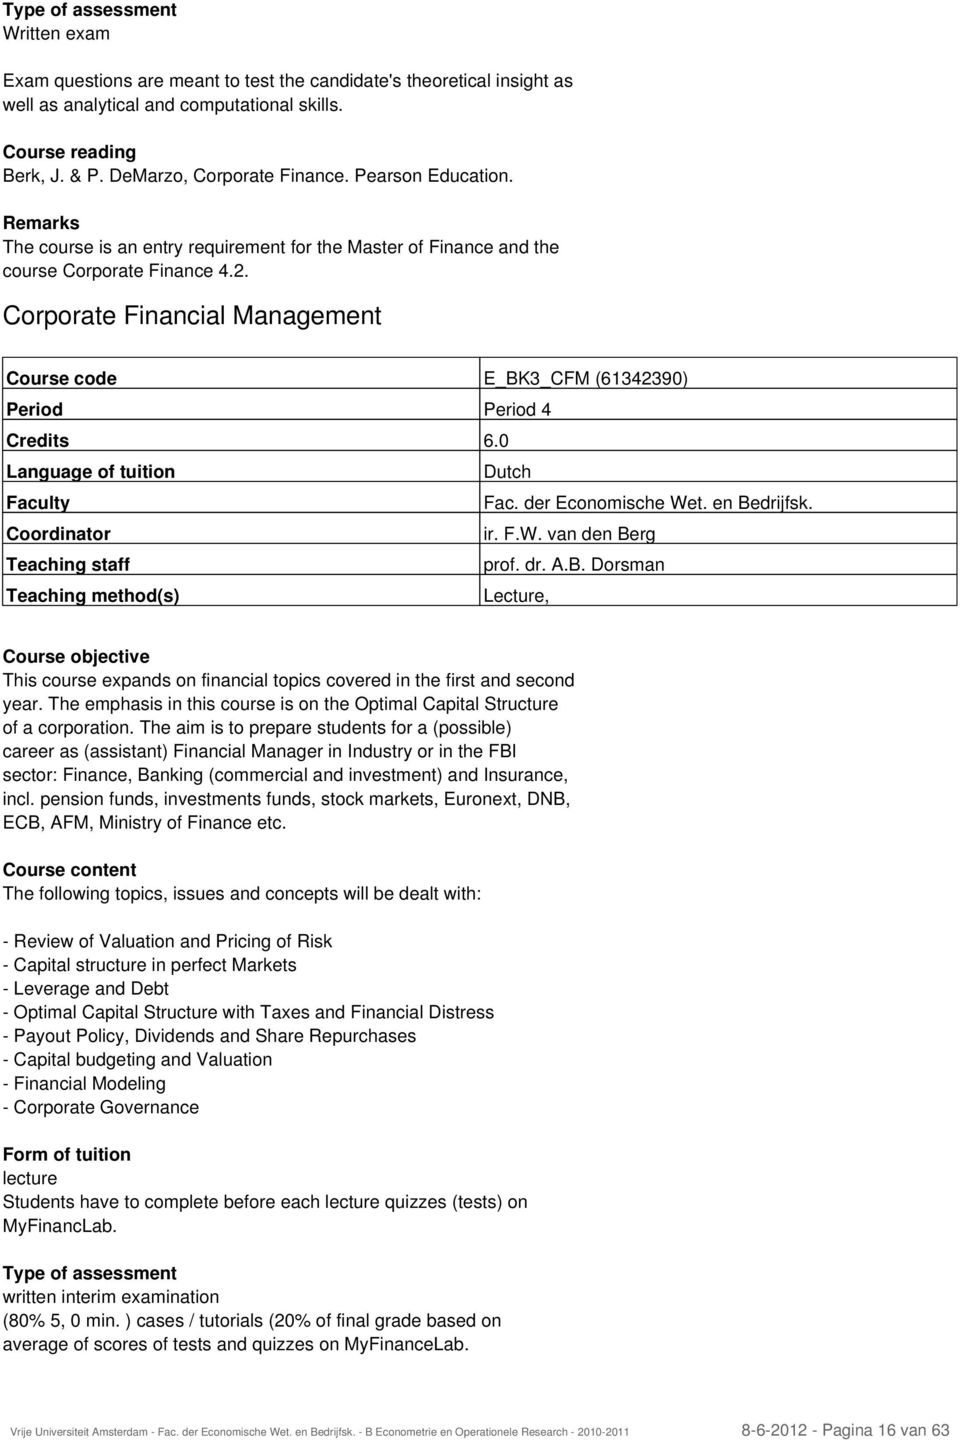 Corporate Financial Management Course code E_BK3_CFM (61342390) Period Period 4 Credits 6.0 Language of tuition Dutch Faculty Coordinator ir. F.W. van den Berg Teaching staff prof. dr. A.B. Dorsman Teaching method(s) Lecture, Course objective This course expands on financial topics covered in the first and second year.